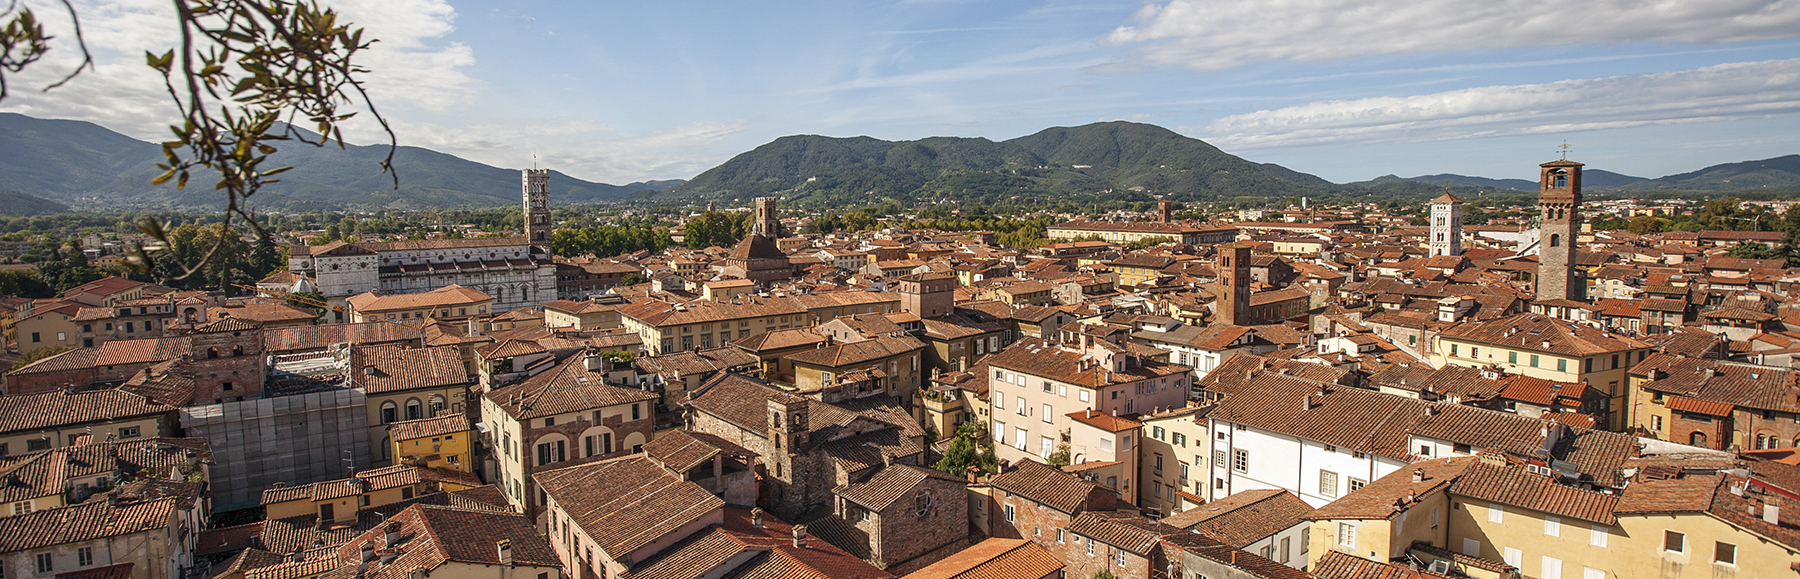 lucca-italy-aerial